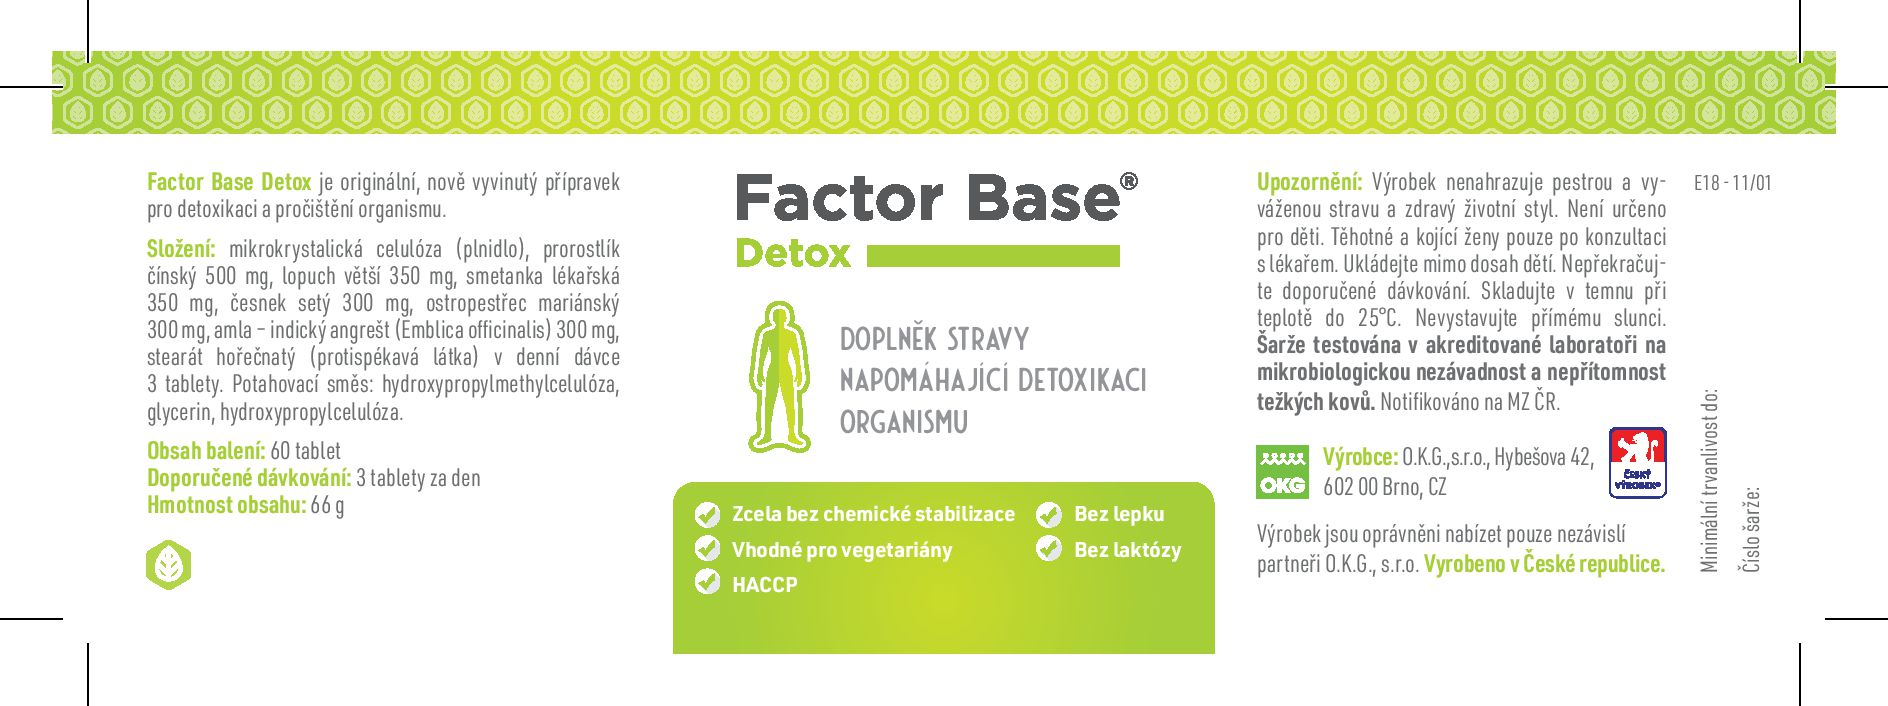 etiketa factor Base Detox